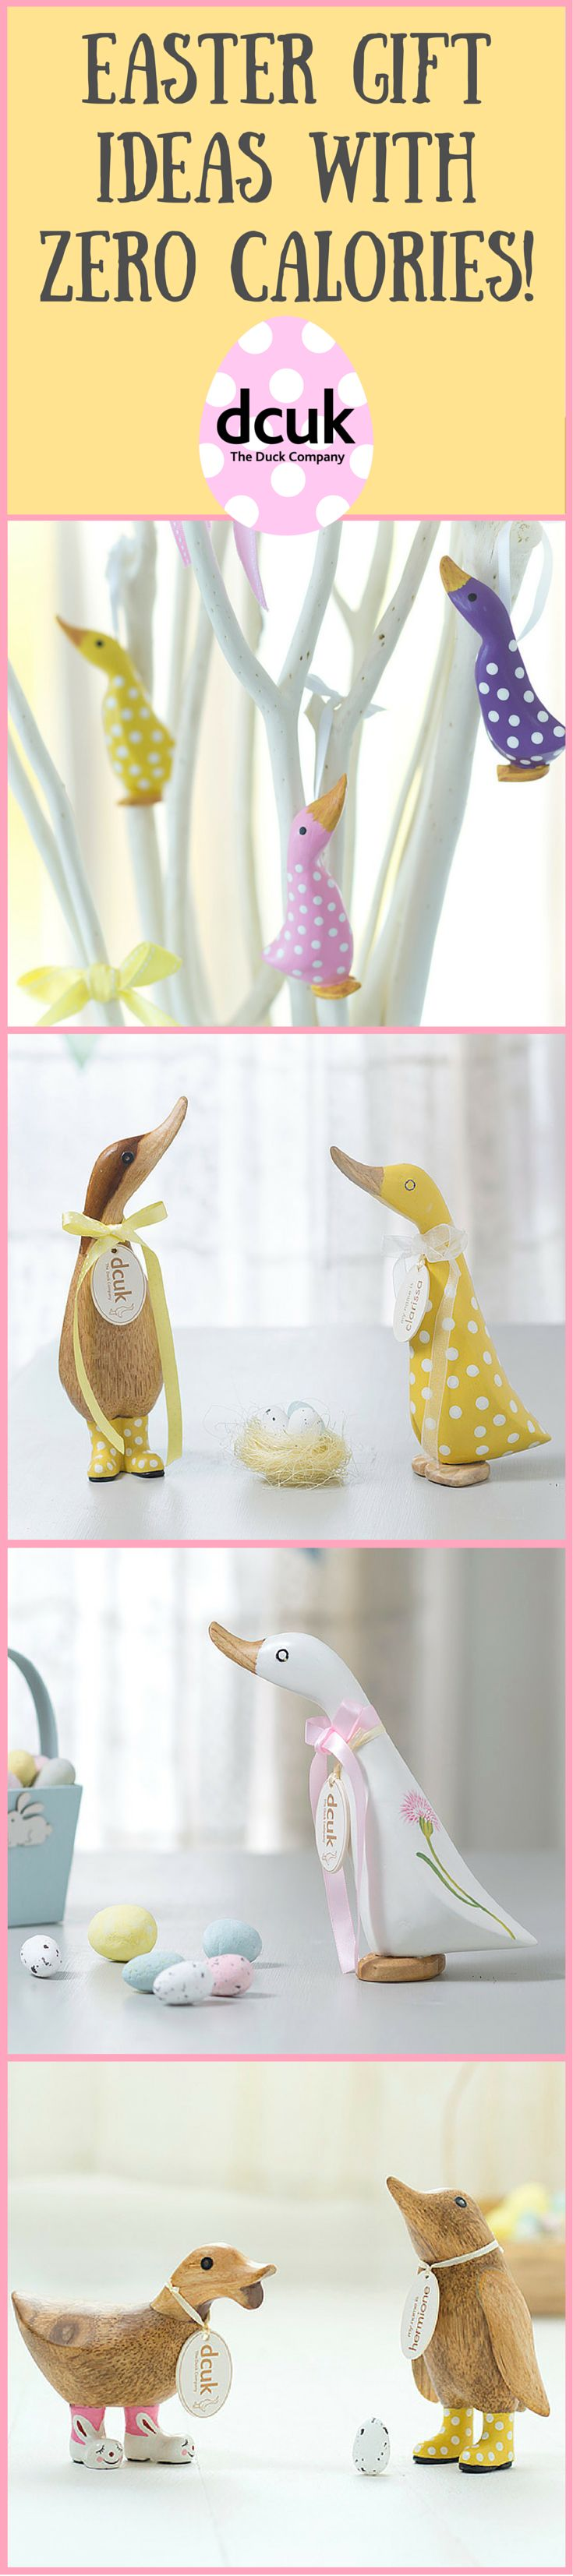 86 best easter garden home club images on pinterest easter easter gift ideas with zero calories this easter why not give a gift that will negle Image collections